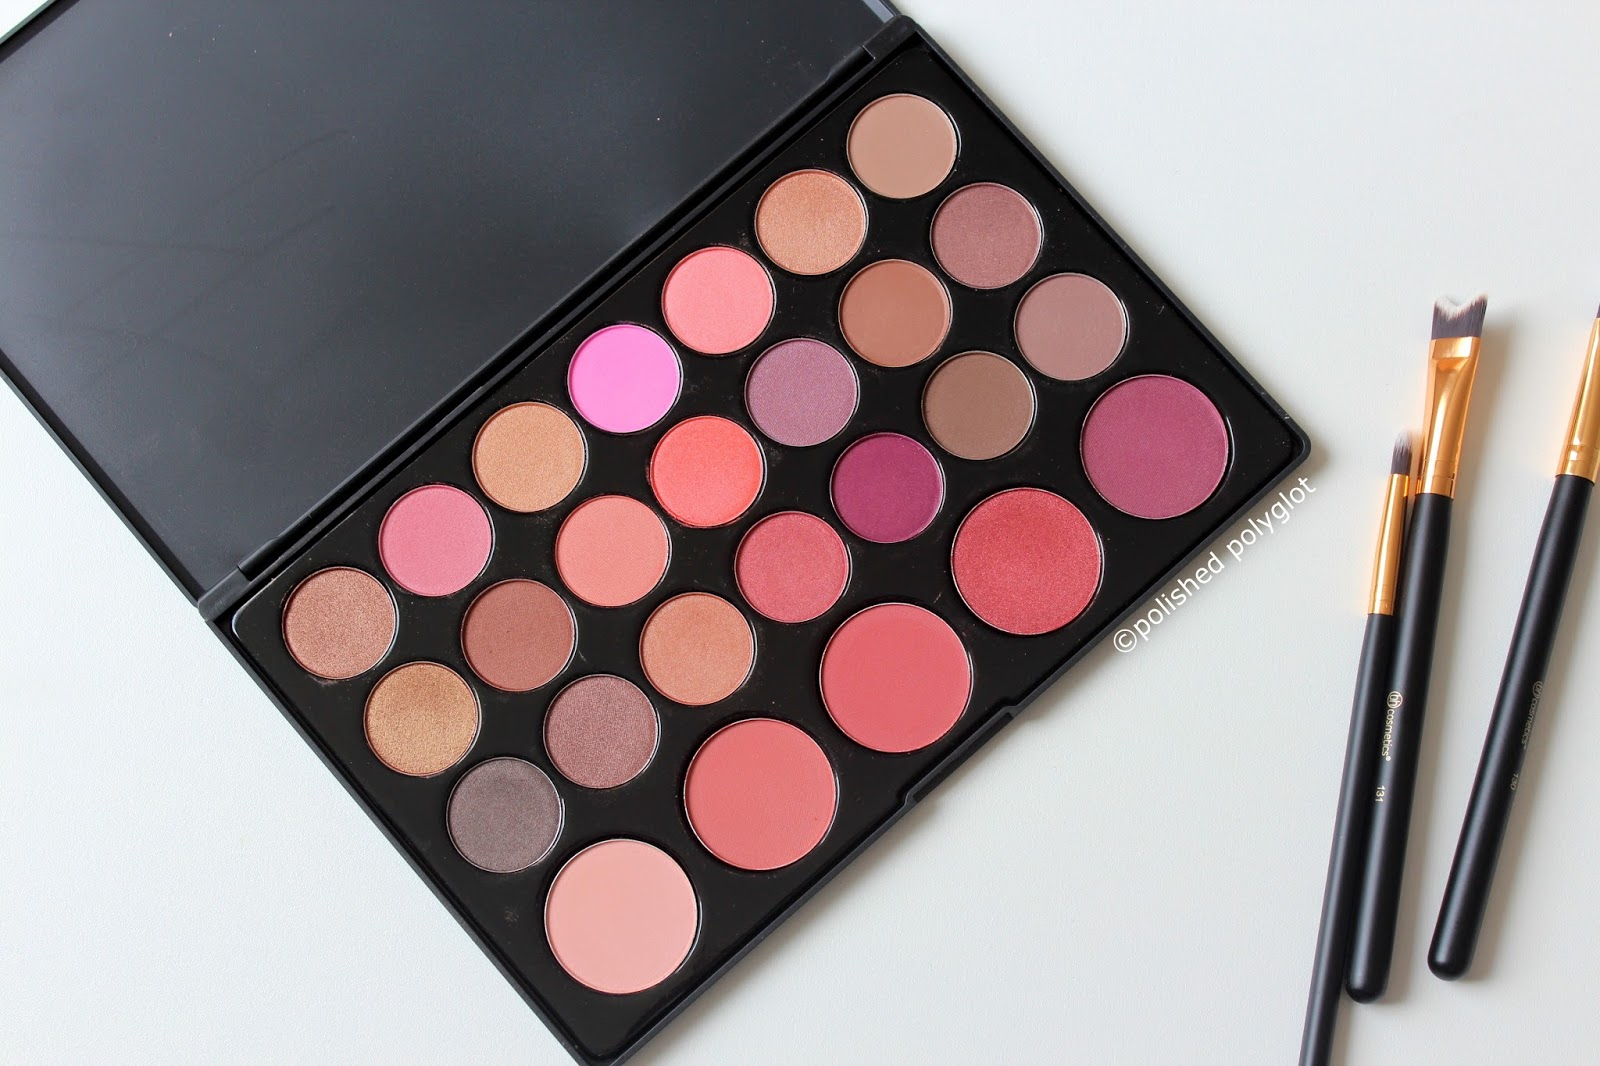 bh cosmetics bubz palette review